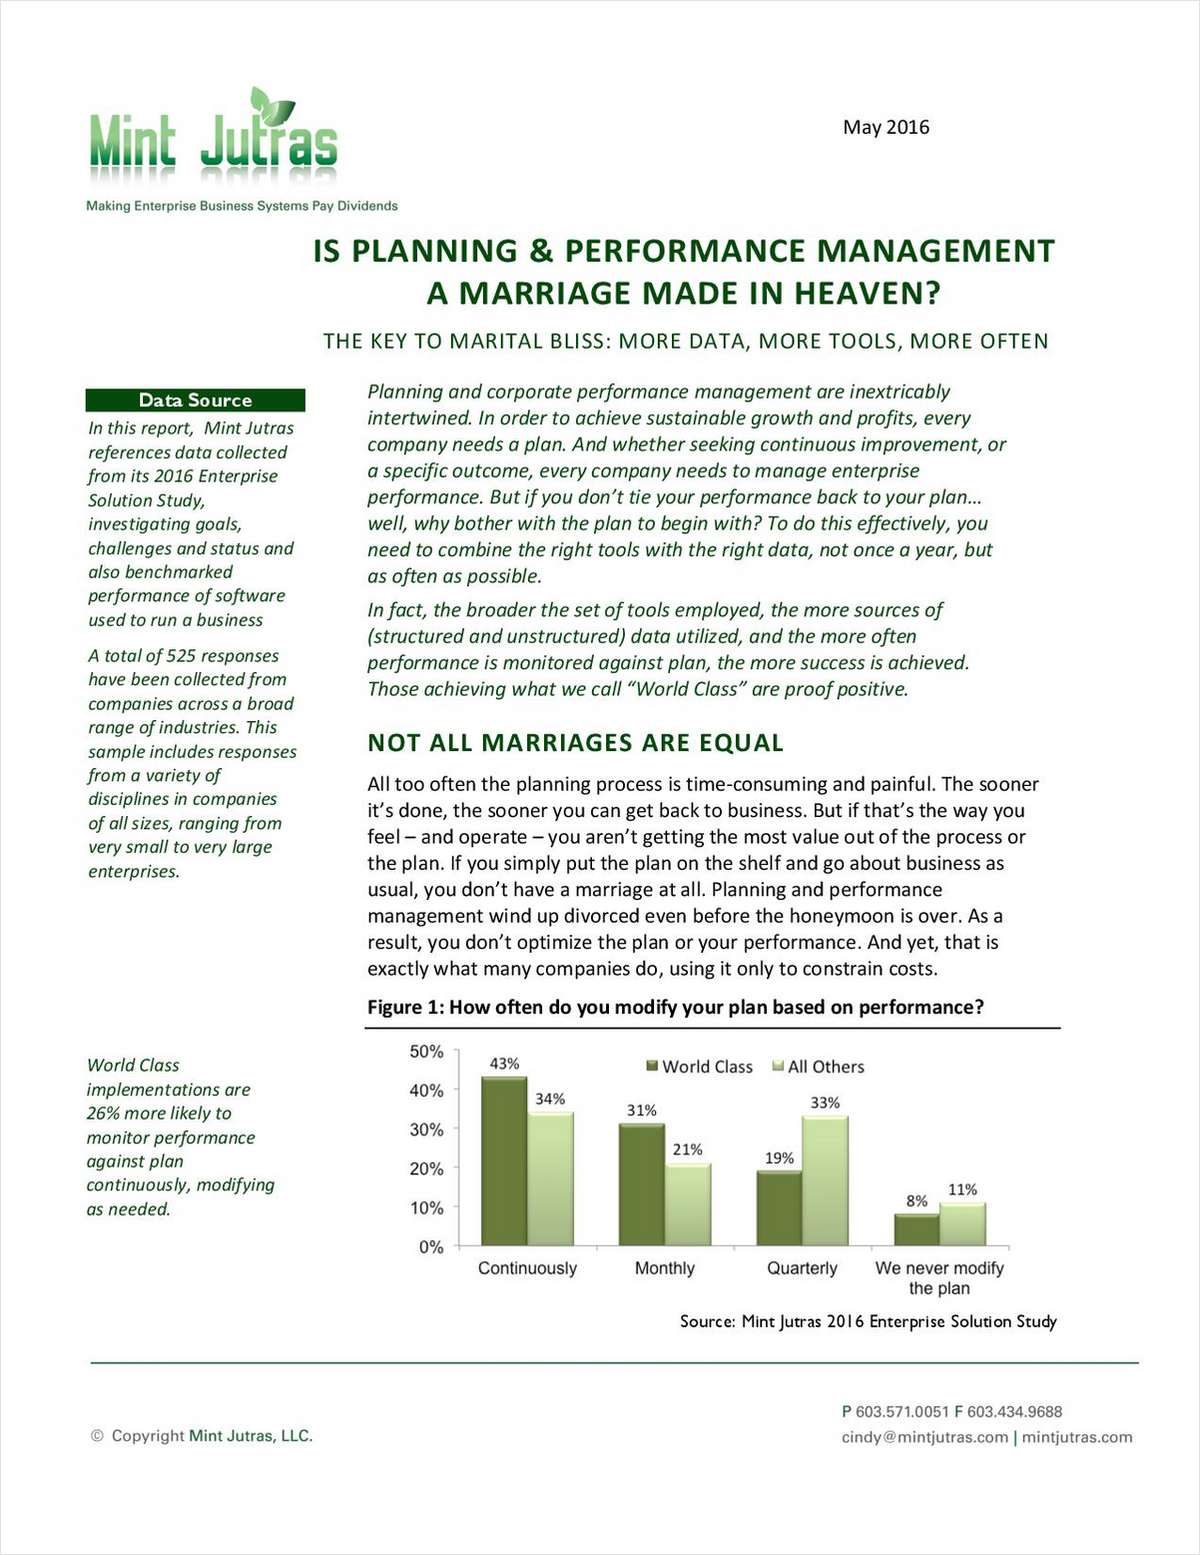 Is Planning & Performance Management a Marriage Made in Heaven?